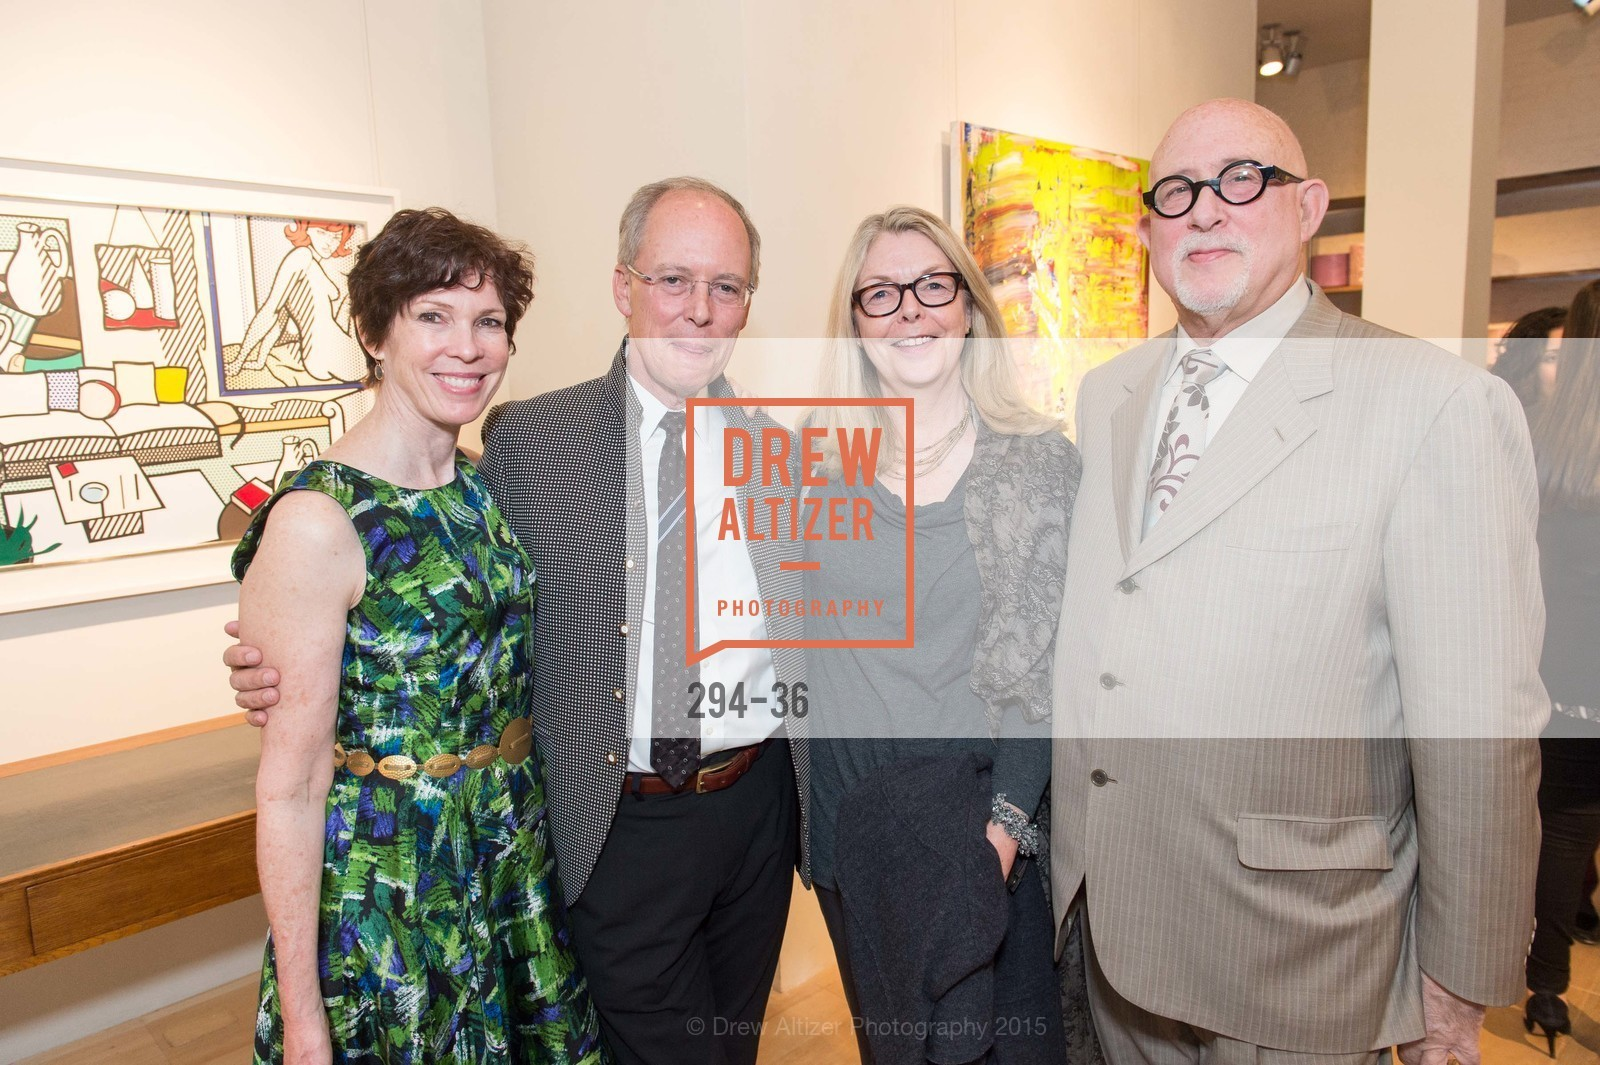 Kitty Morgan, Charles Desmarais, Lucinda Barnes, Robert Shinshack, Post War and Contemporary preview at Hedge Gallery , Hedge Gallery. 501 Pacific Ave, San Francisco, CA 94133, April 16th, 2015,Drew Altizer, Drew Altizer Photography, full-service agency, private events, San Francisco photographer, photographer california